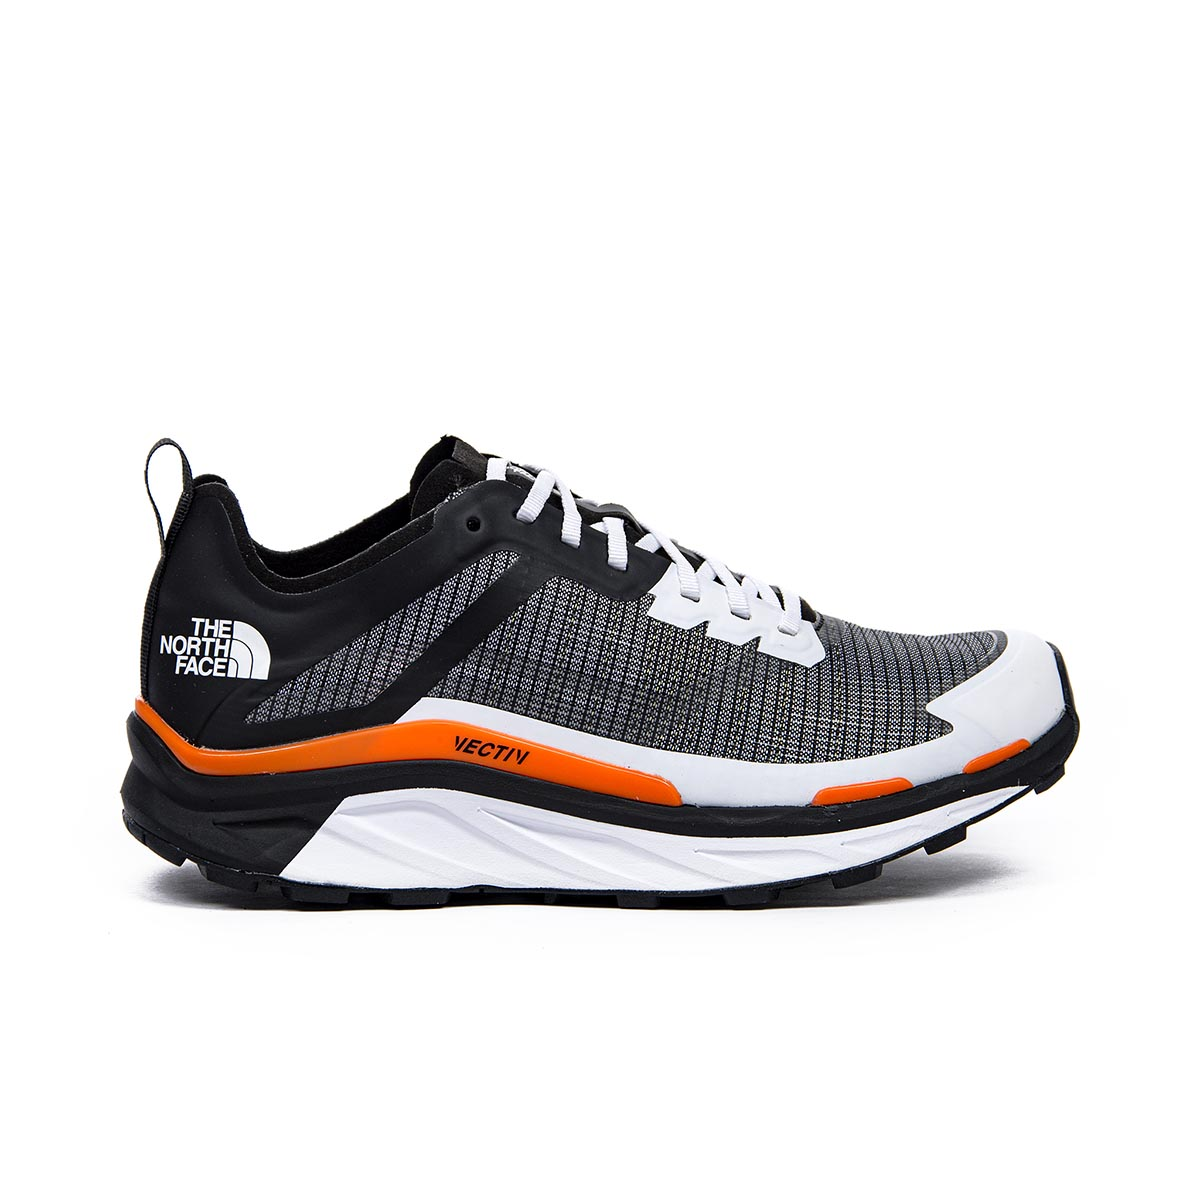 THE NORTH FACE - VECTIV INFINITE SHOES